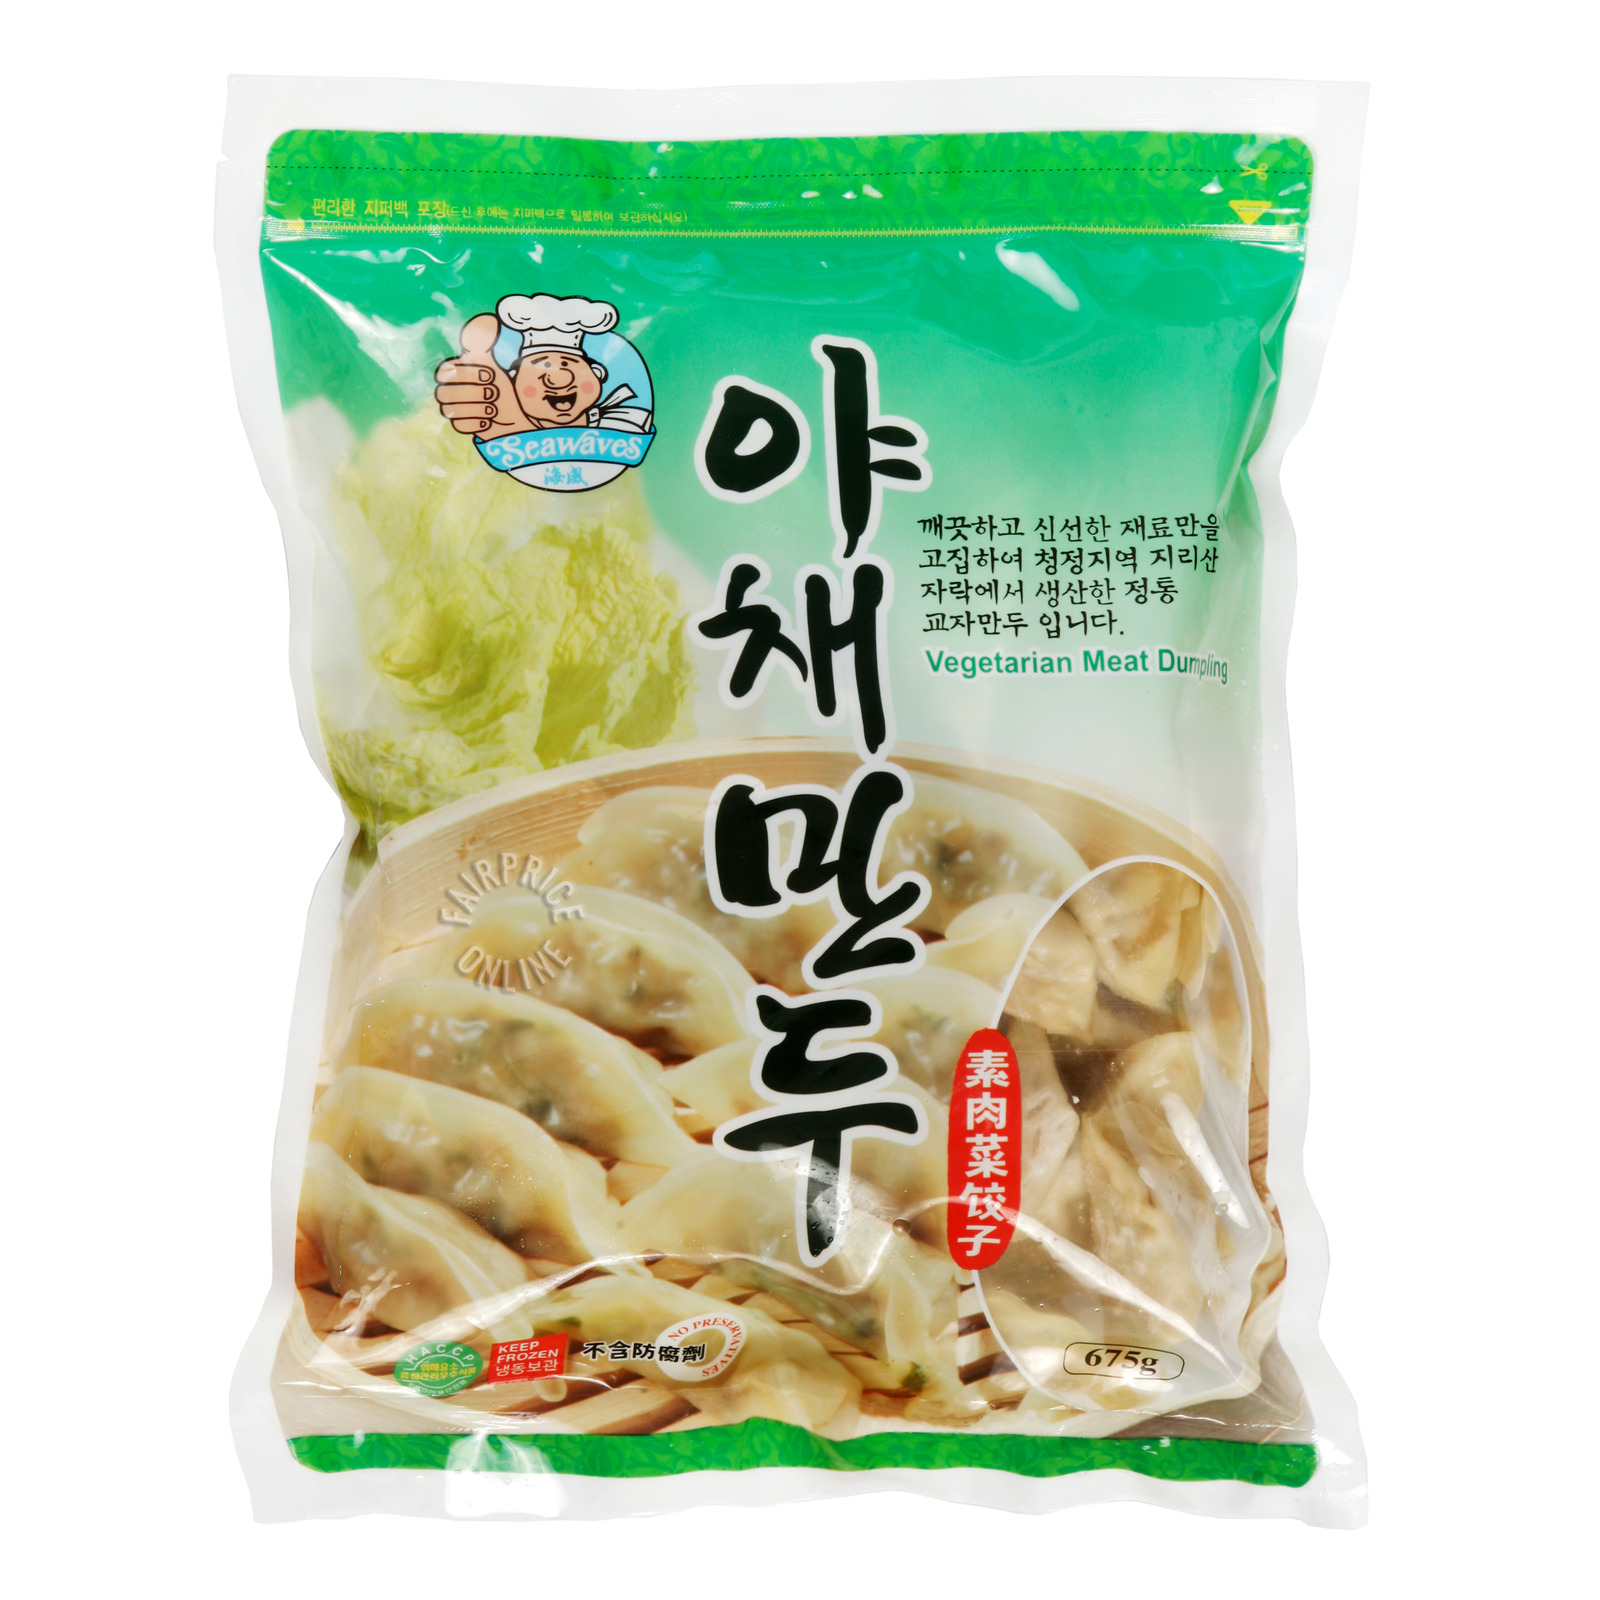 Seawaves Frozen Dumpling - Vegetarian Meat